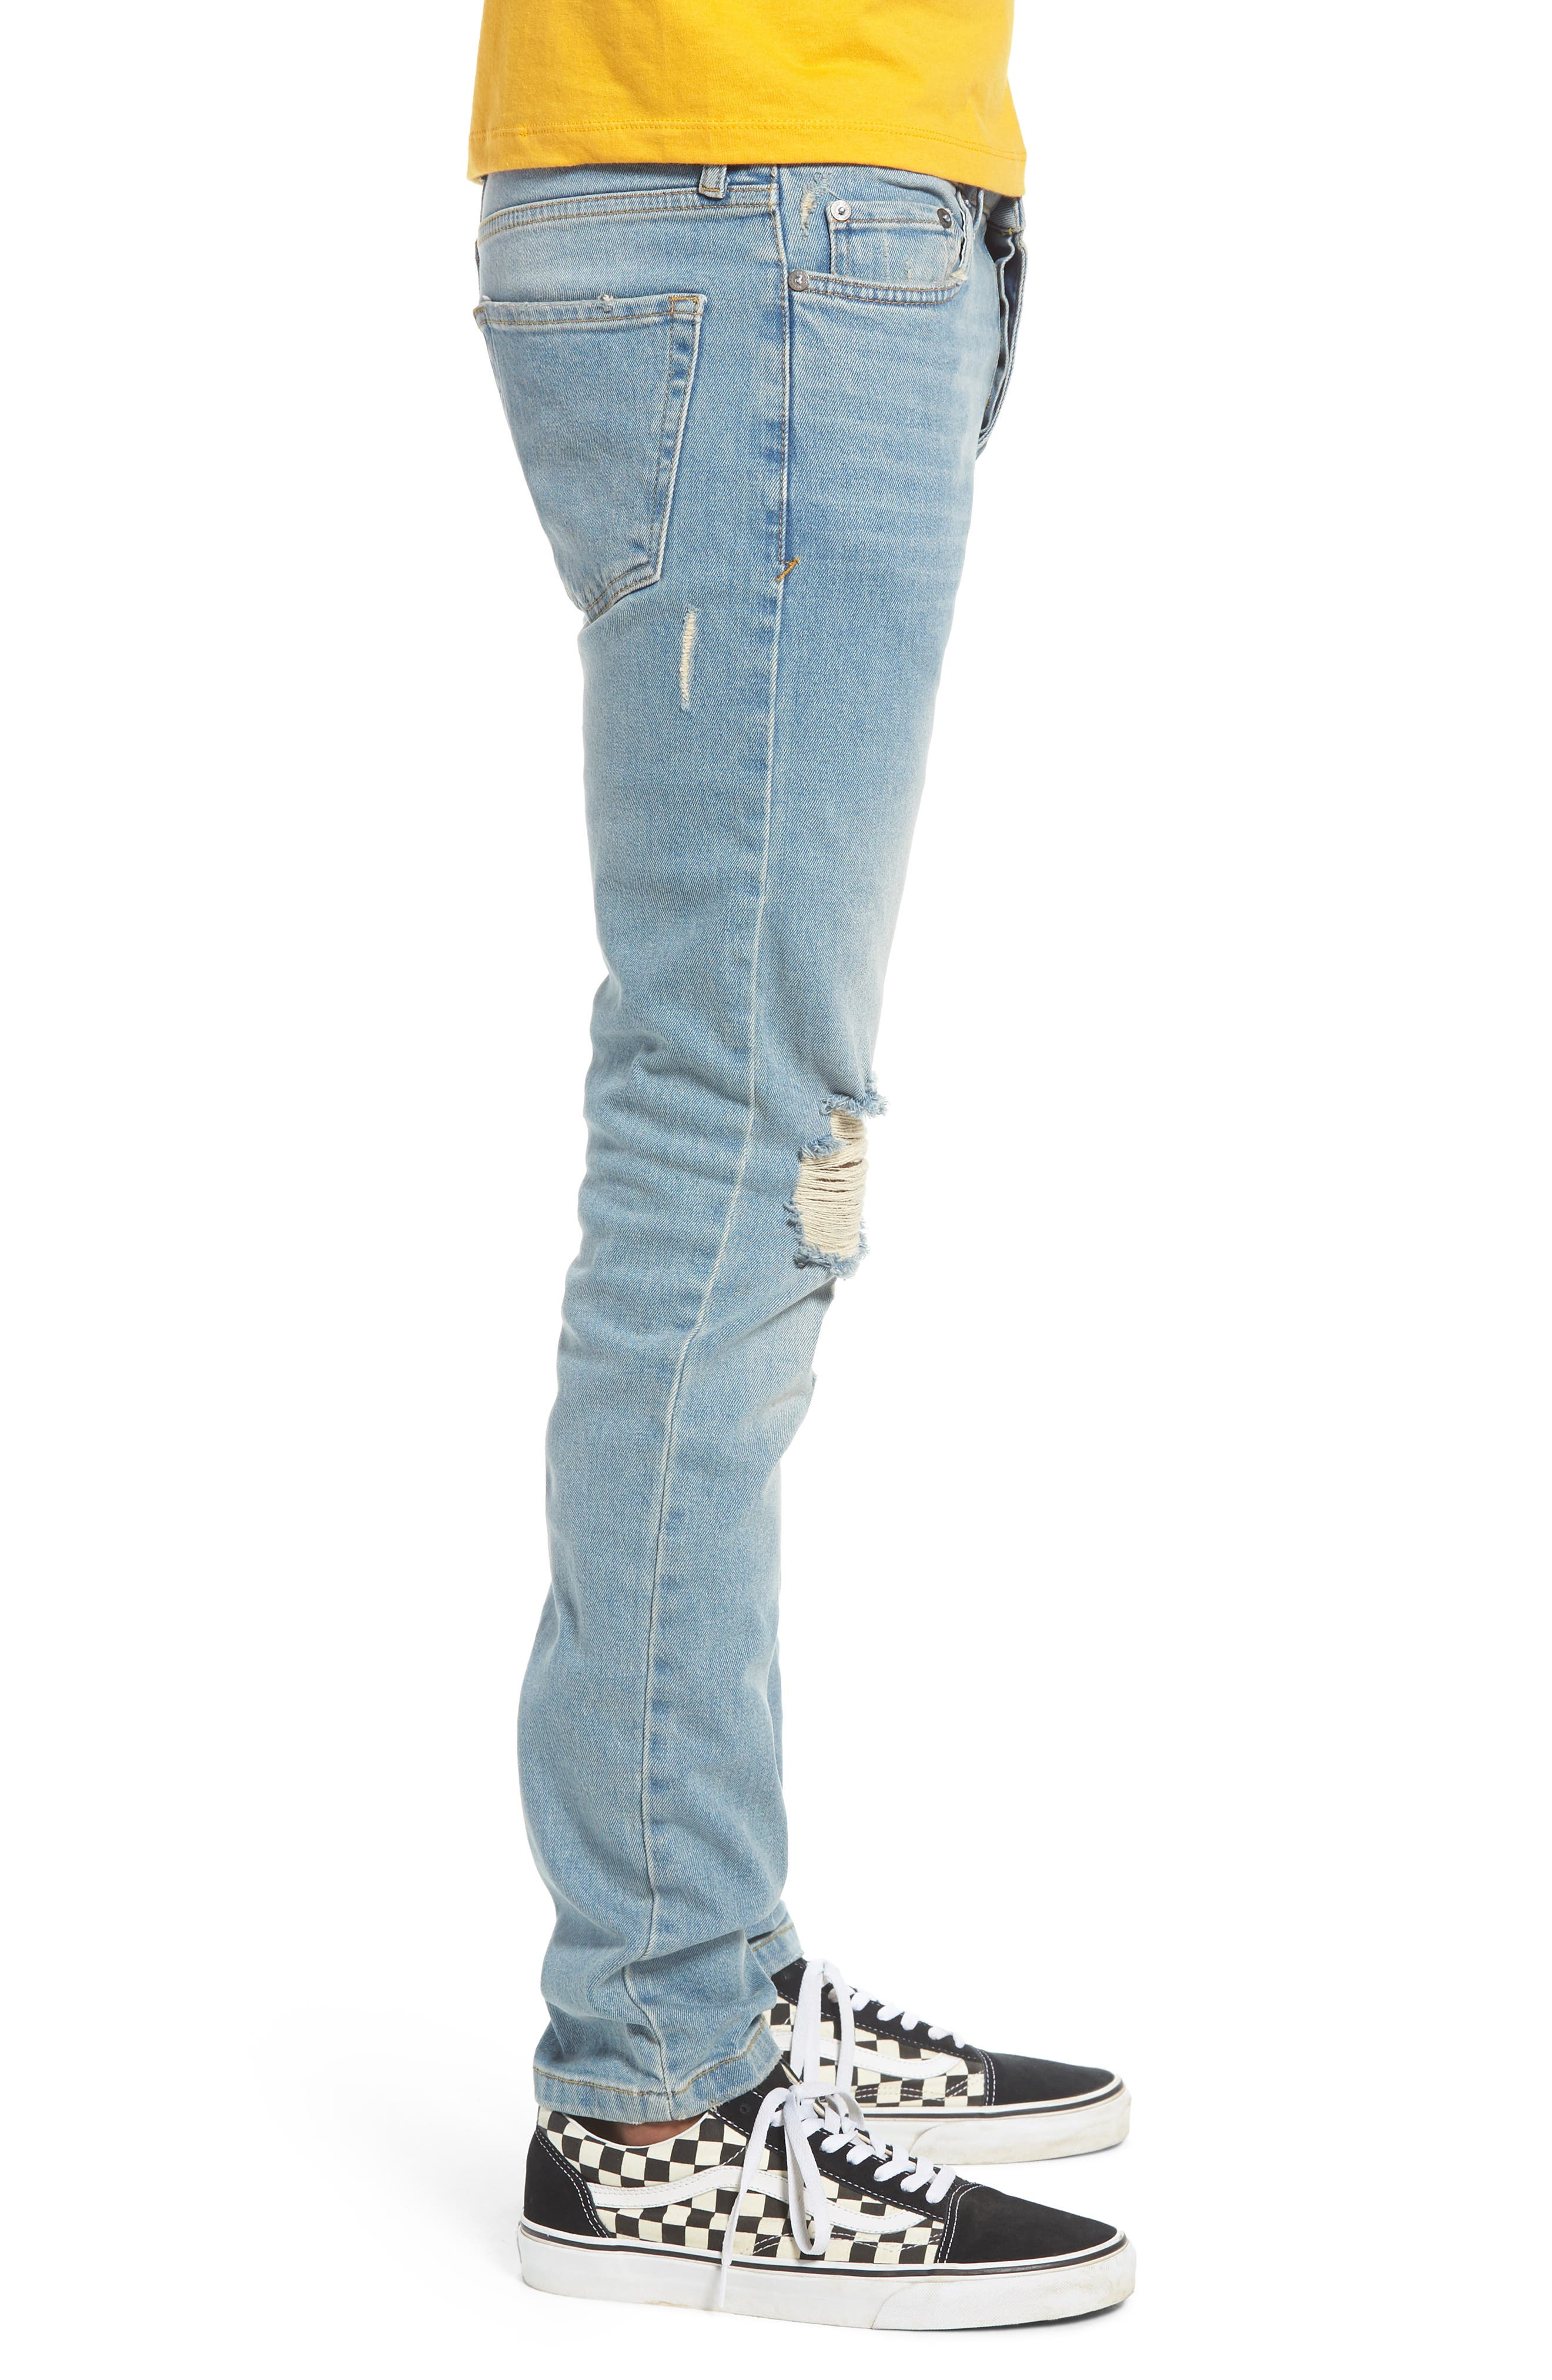 TOPMAN, Ripped Stretch Skinny Jeans, Alternate thumbnail 4, color, LIGHT WASH DENIM